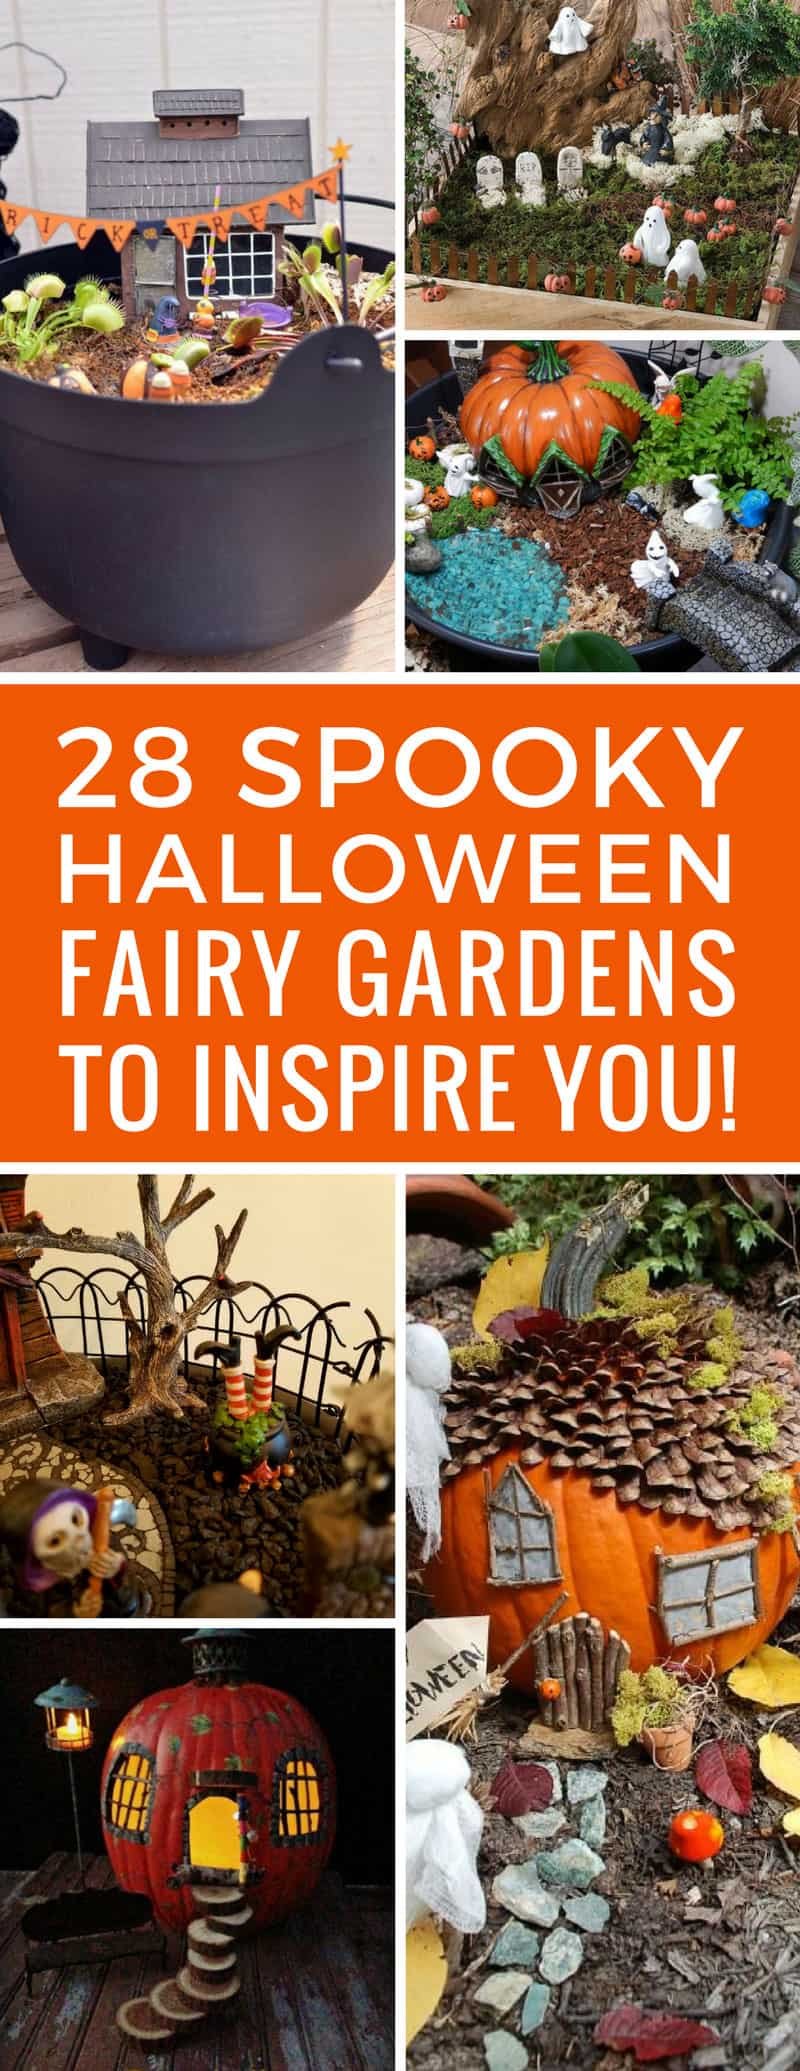 Loving these Halloween fairy gardens - we hadn't thought to decorate the fairy house for Halloween so now we're going to get our spook on! Thanks for sharing!